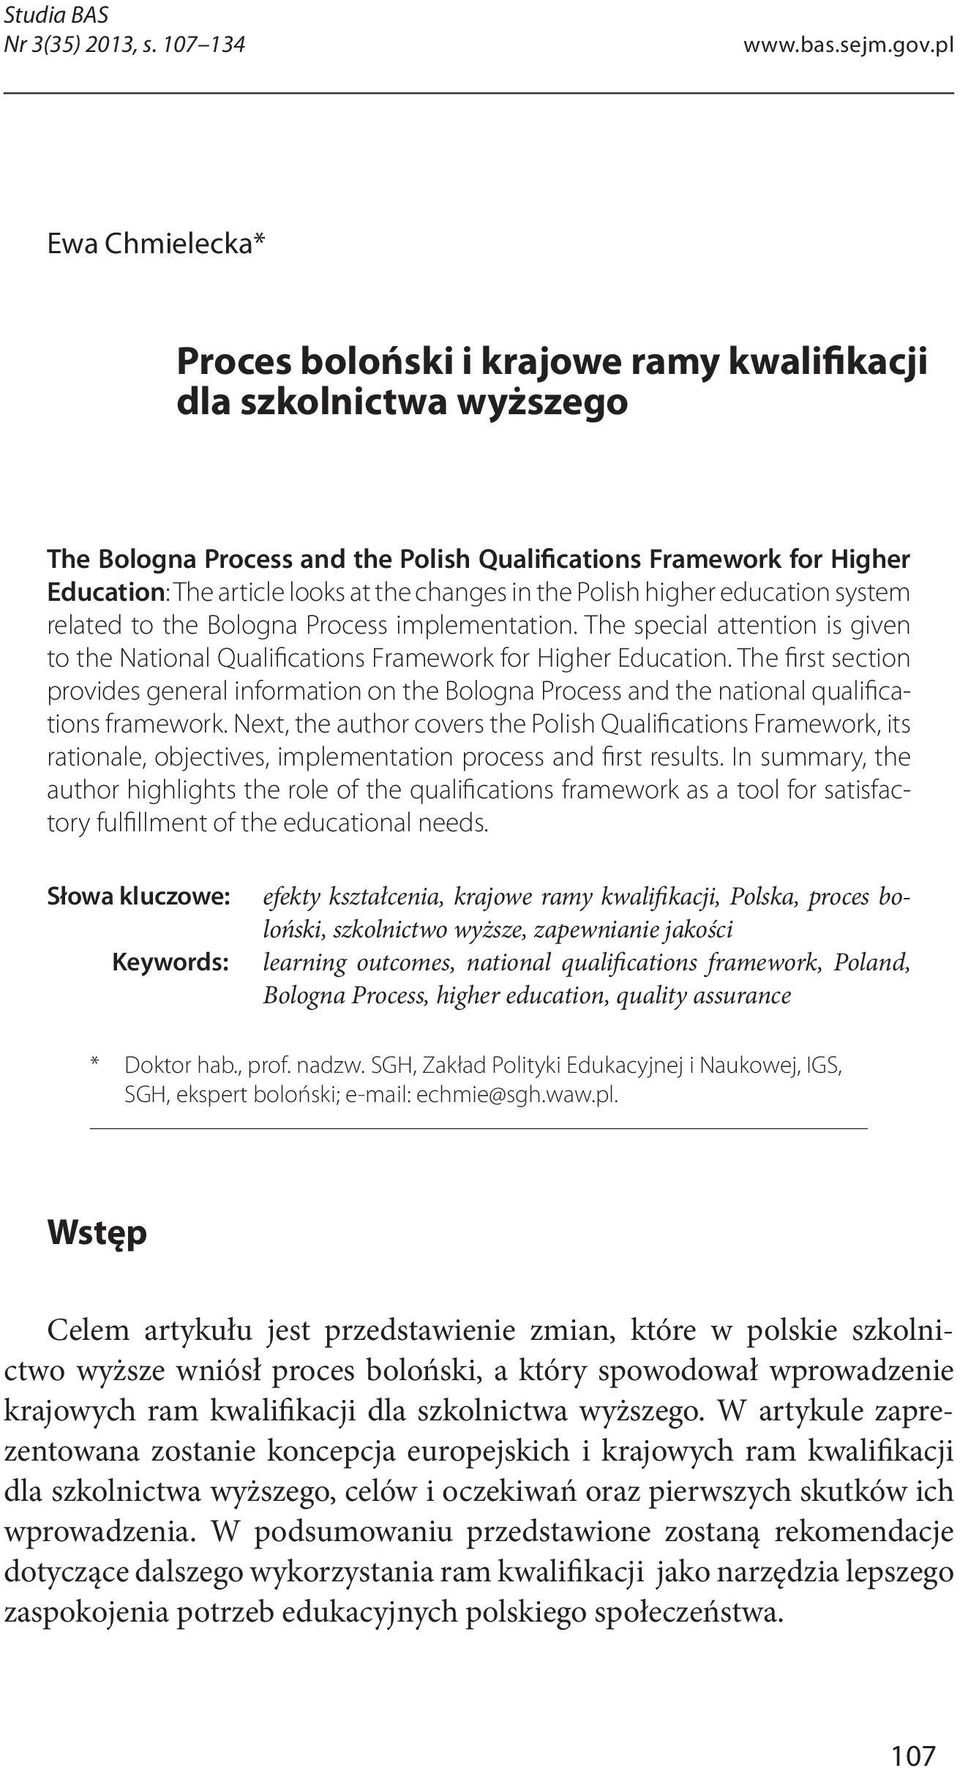 changes in the Polish higher education system related to the Bologna Process implementation. The special attention is given to the National Qualifications Framework for Higher Education.